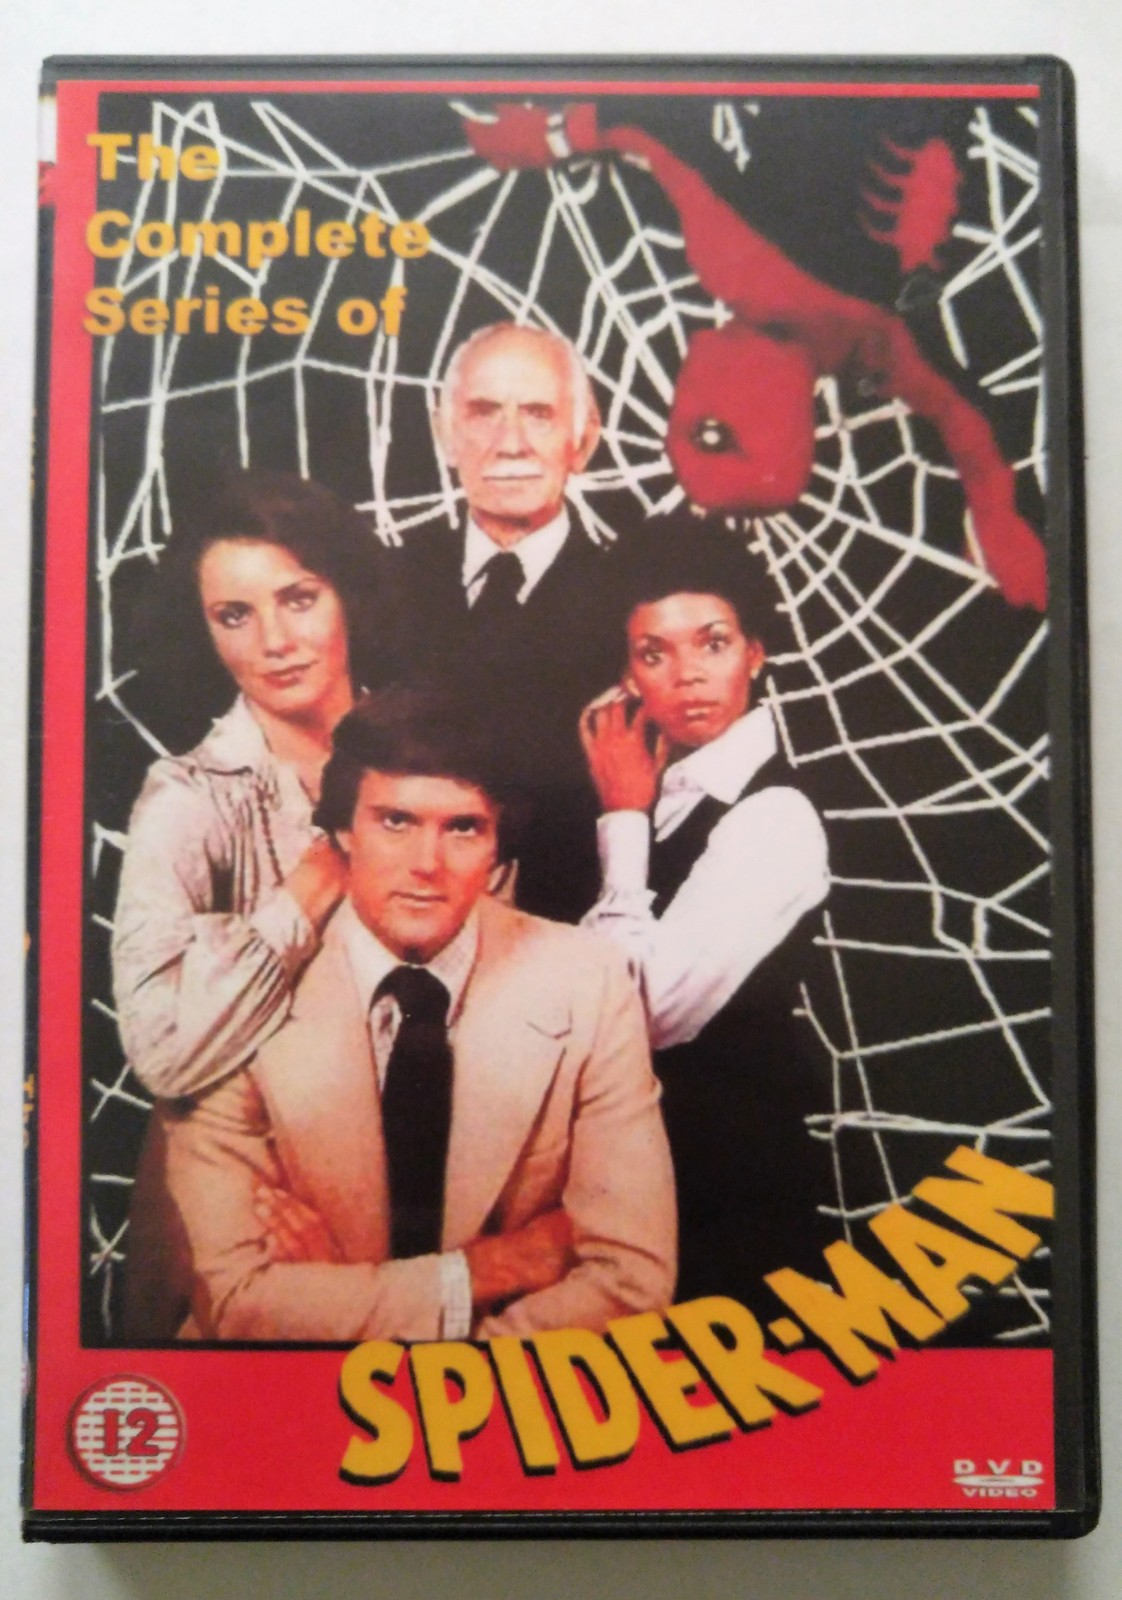 Primary image for 1977 Spiderman Complete Live Action TV Series on 4 DVDs